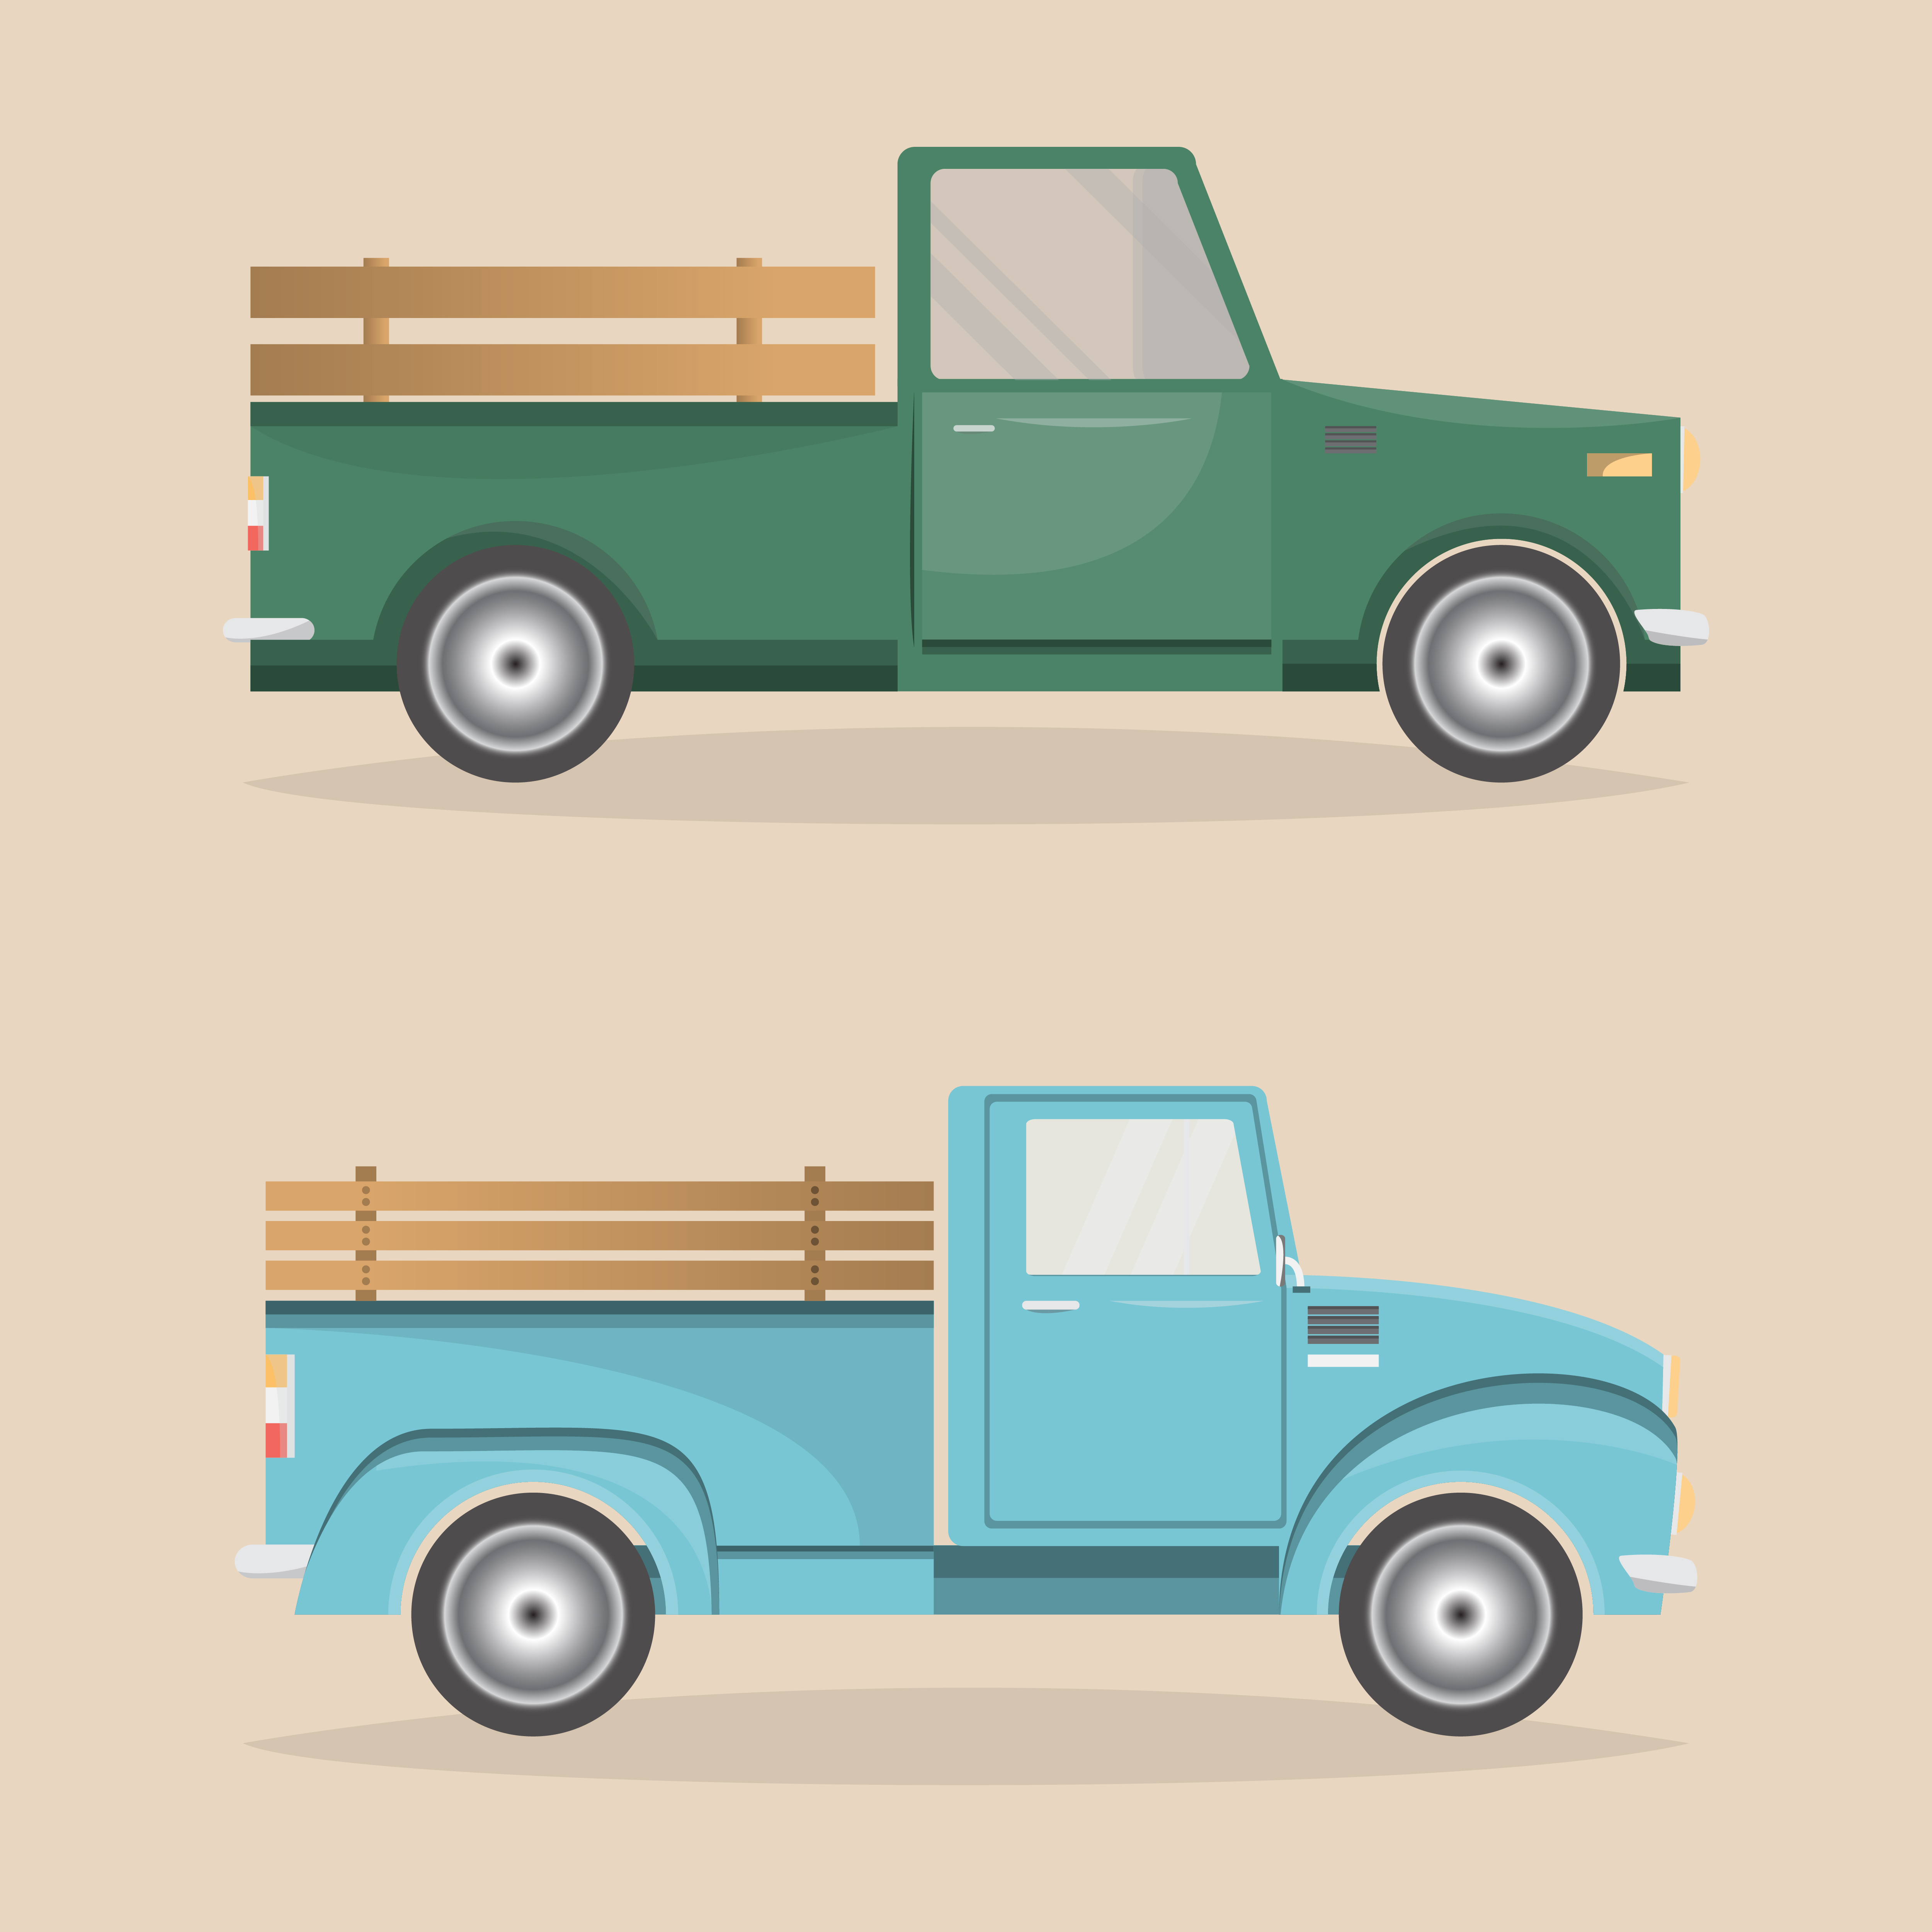 Vintage delivery truck clipart png transparent stock Pickup Truck Free Vector Art - (50,641 Free Downloads) png transparent stock